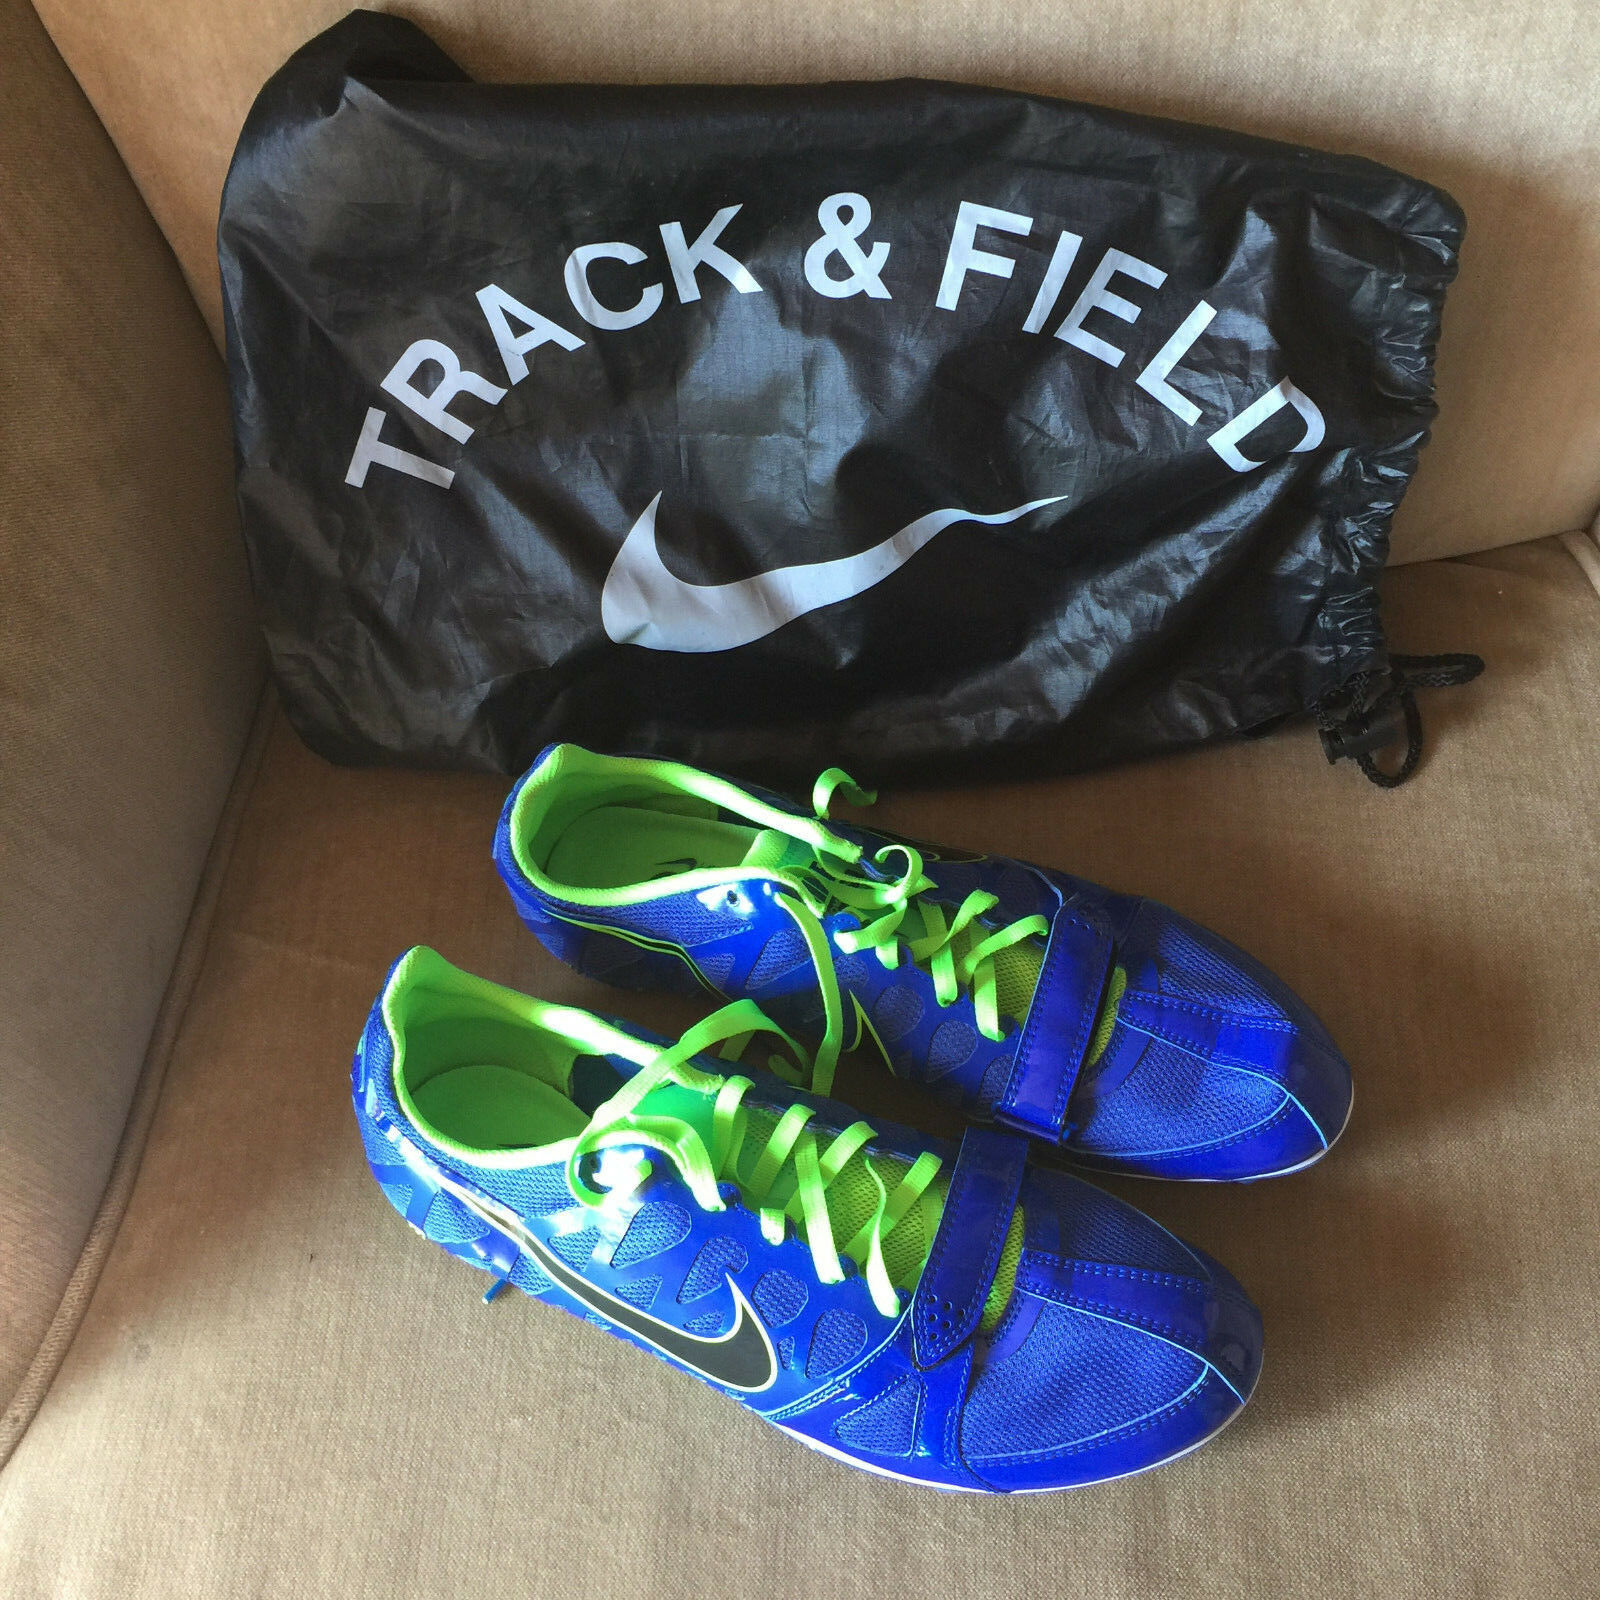 Nike Track & Field Spikes Shoes Green Blue Men's 11.5